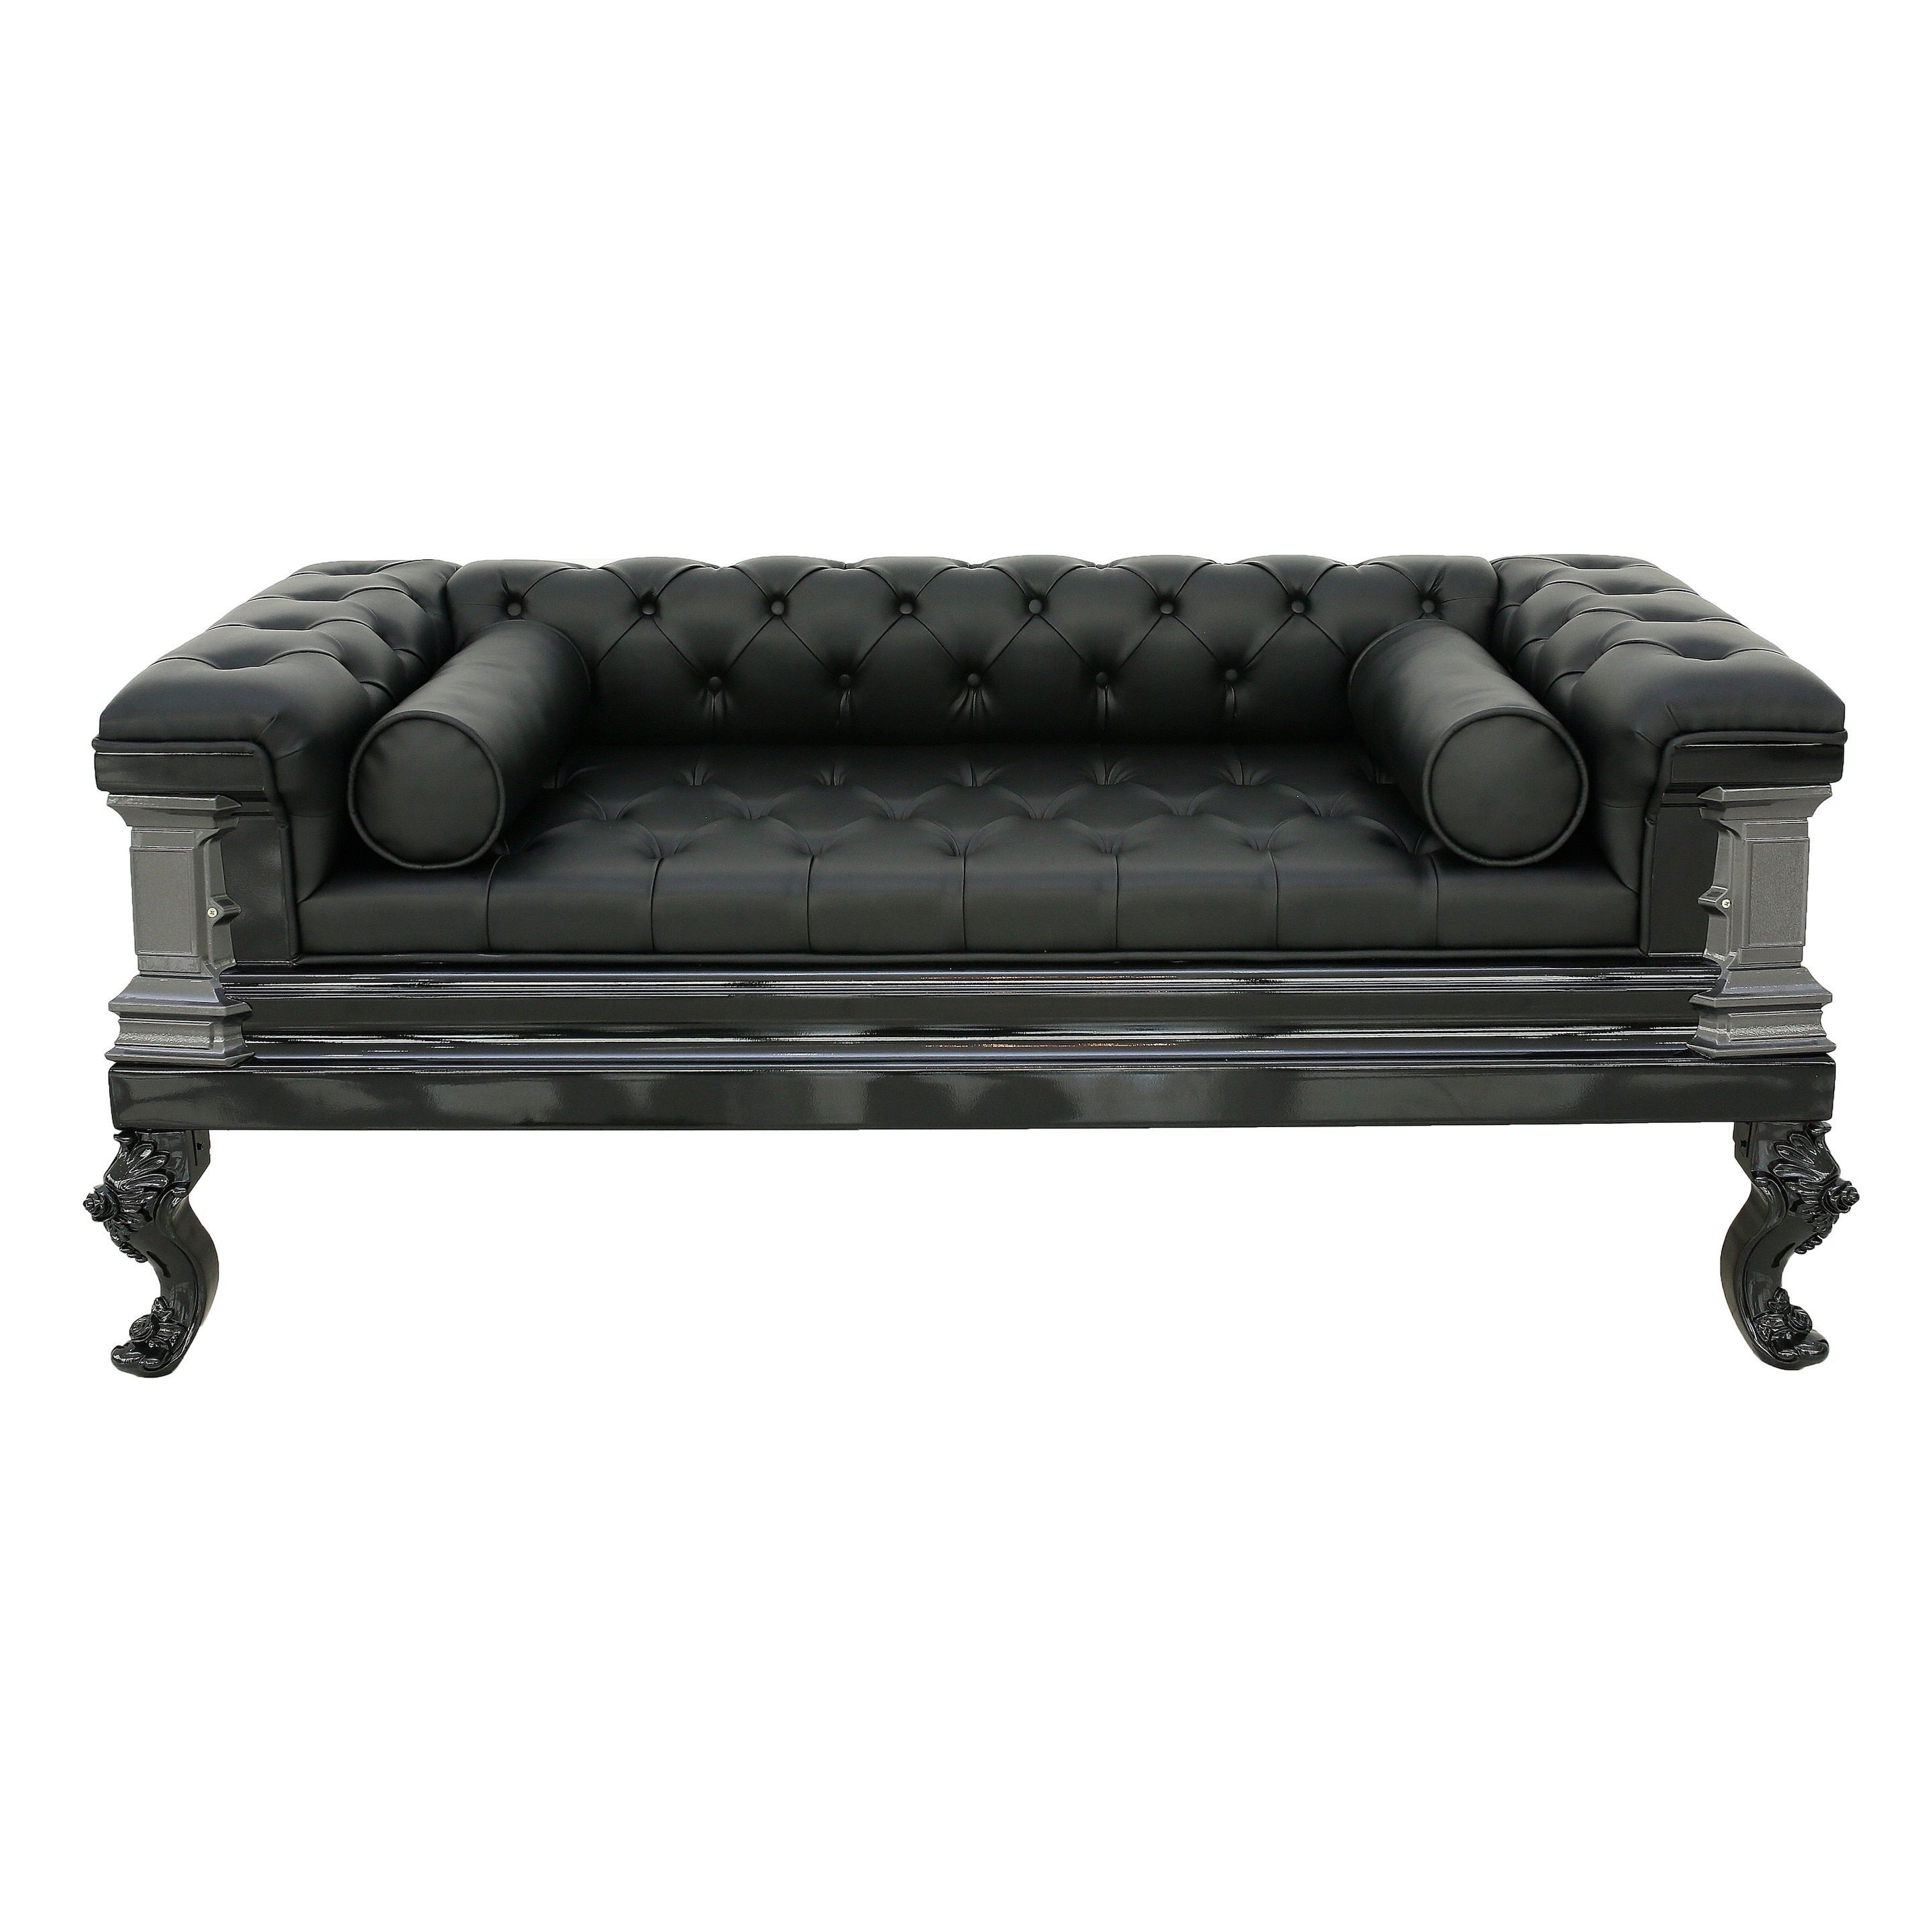 Gothic Inspired Black Leather Sofa